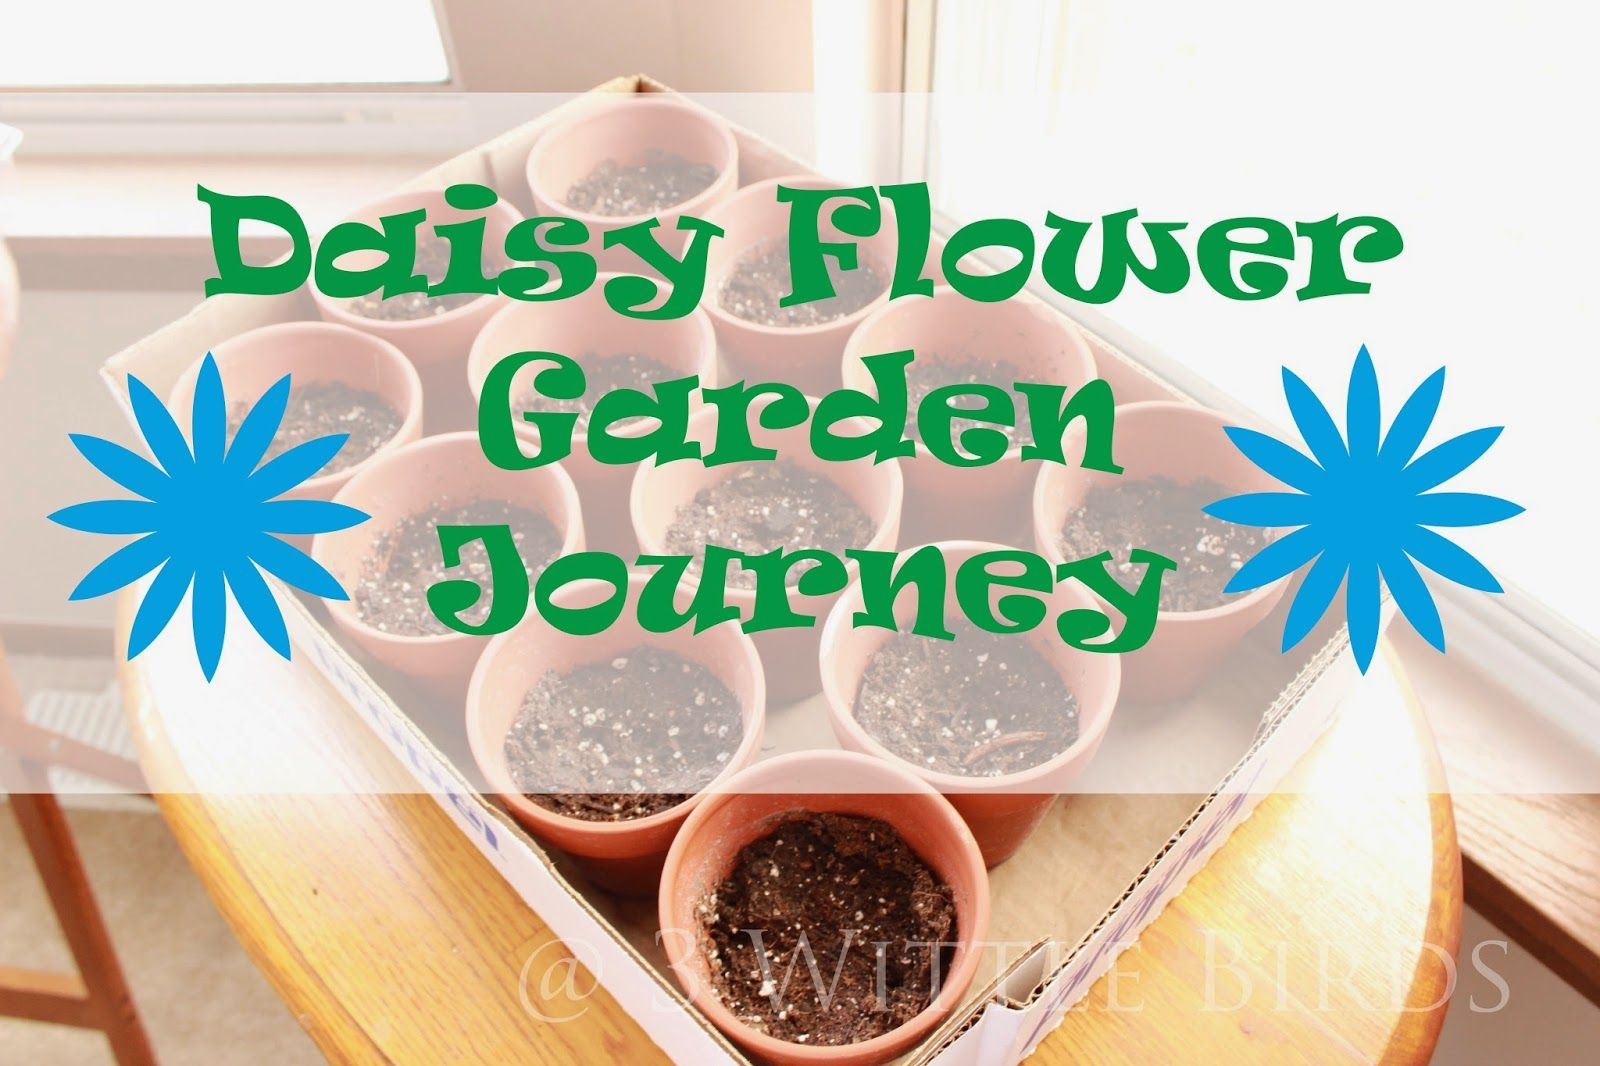 Daisy flower garden journey session 1 actitud siluetas y colores daisy flower garden journey for girl scouts session 1 great ideas dhlflorist Image collections